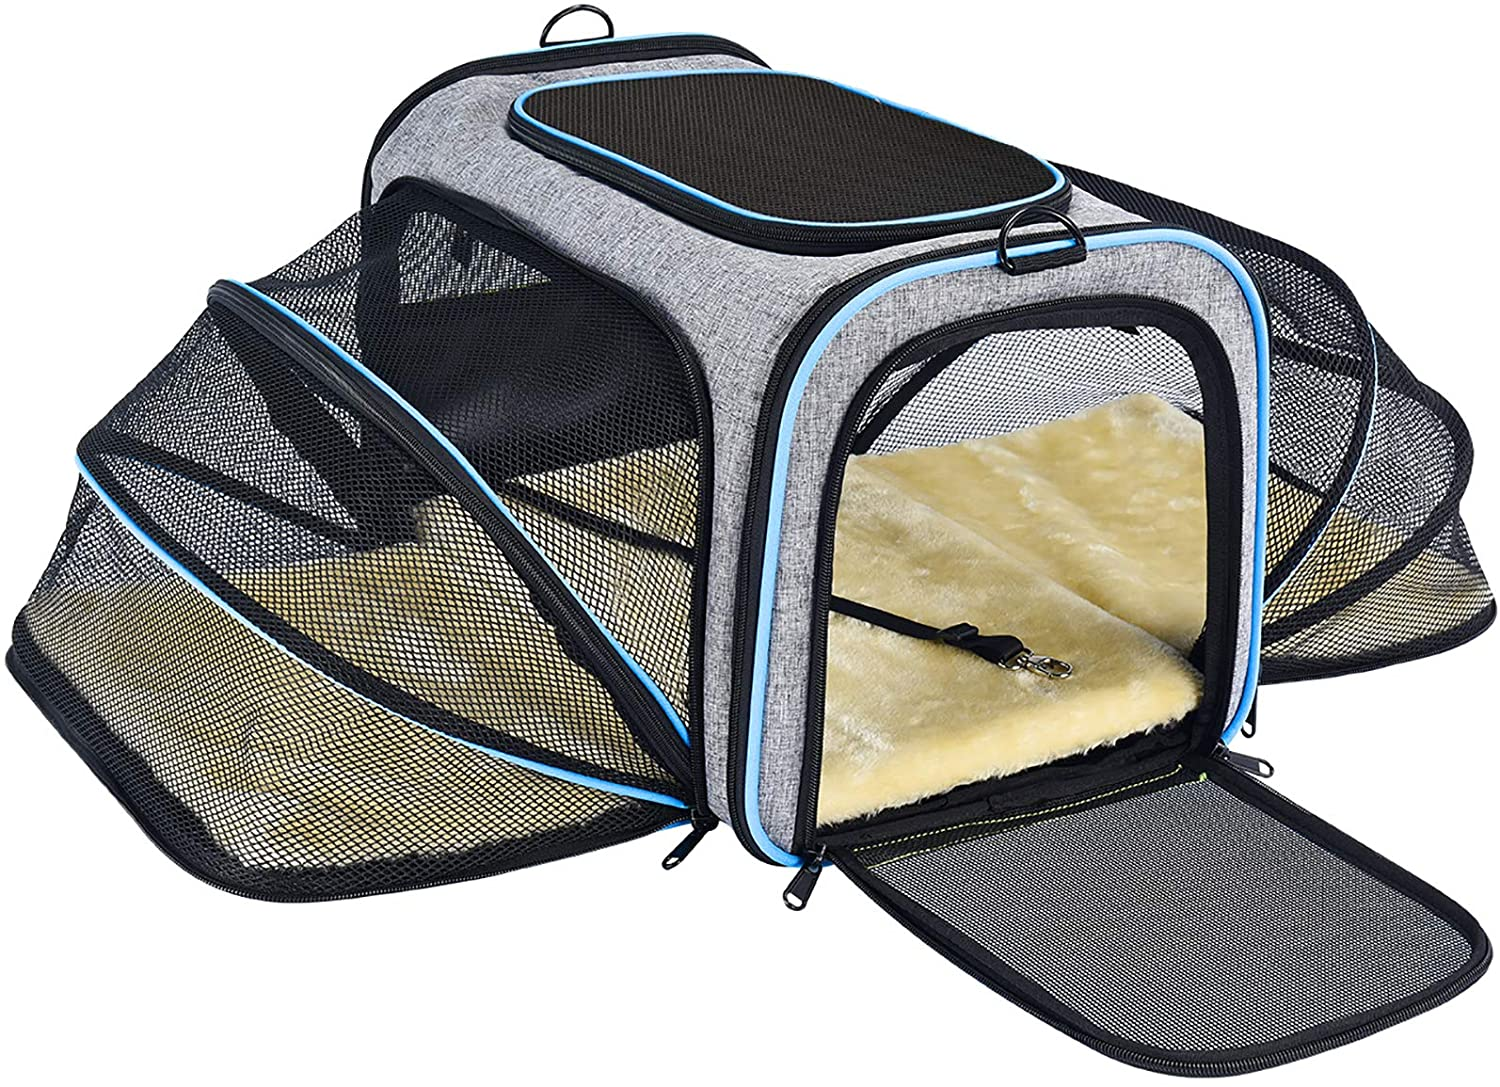 Amazon Com Omorc Pet Carrier Airline Approved Expandable Foldable Soft Sided Dog Carrier 3 Open Doors 2 Reflective Tapes Pet Travel Bag Safe And Easy For Cats And Dogs Grey Pet Supplies